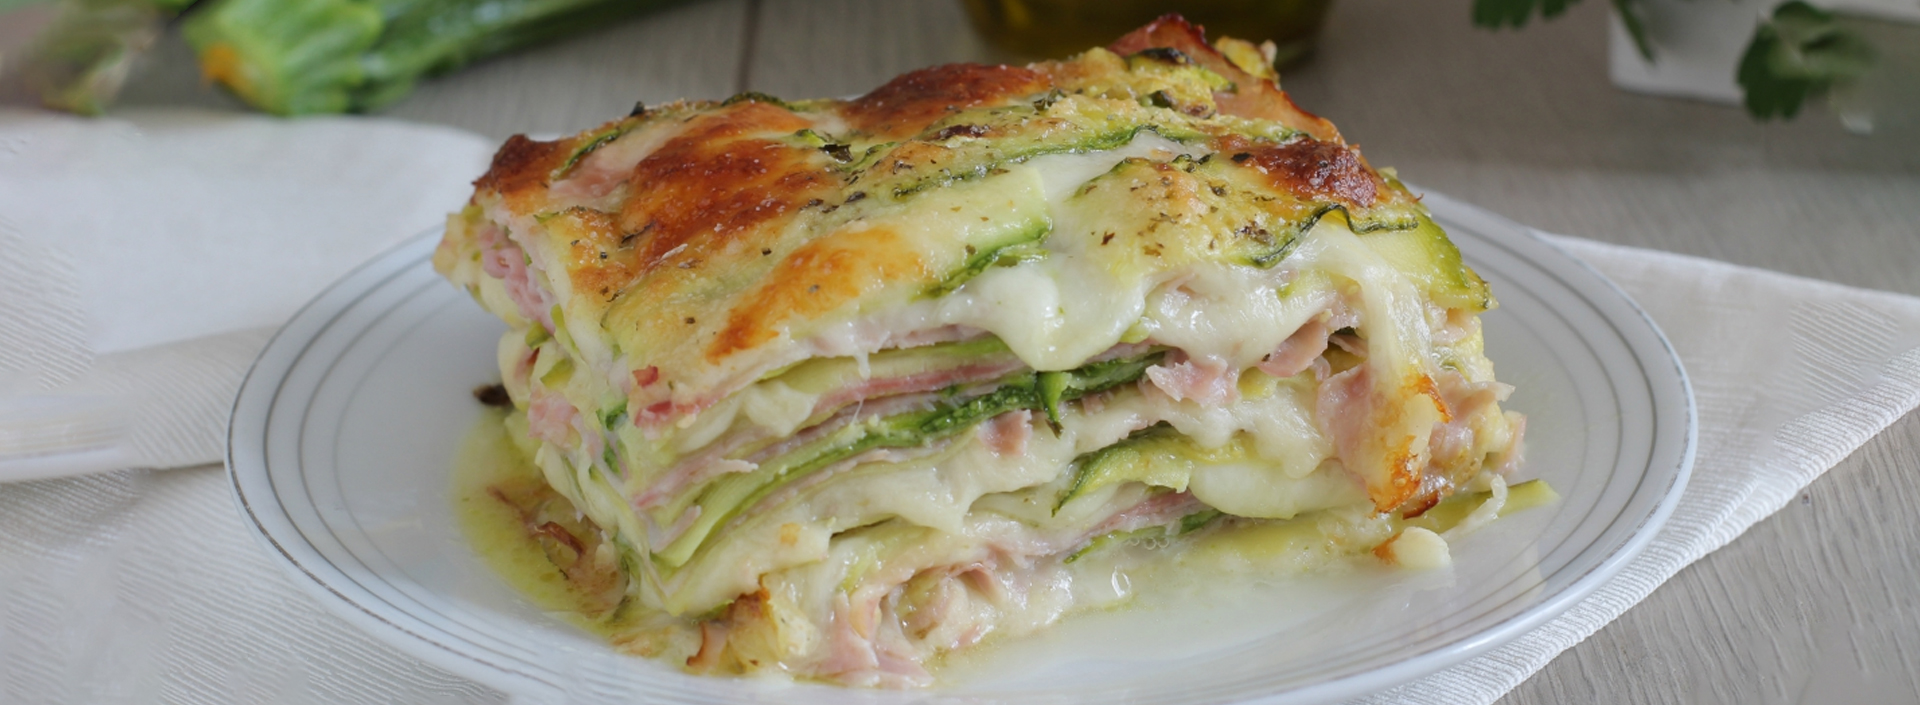 parmigiana-di-zucchine-light-article